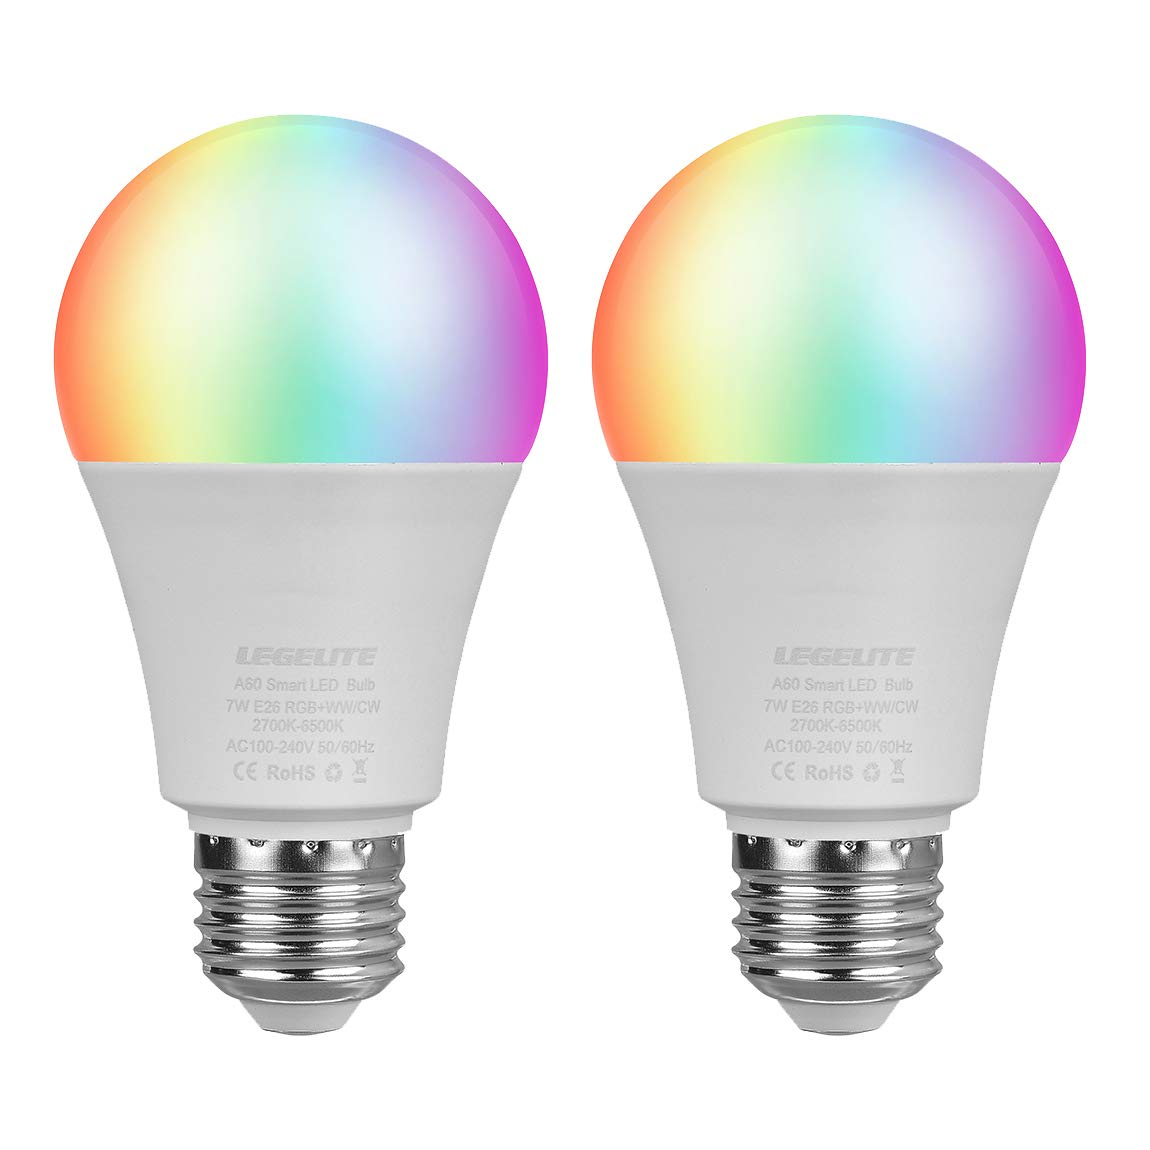 LED WiFi Smart Light Bulbs, E26 WiFi Light Bulb Works with Amazon Alexa Google Home and IFTTT, RGBCW Color Changing, Cool White and Warm White Dimmable, No Hub Required, A19 60W Equivalent (2 Pack)